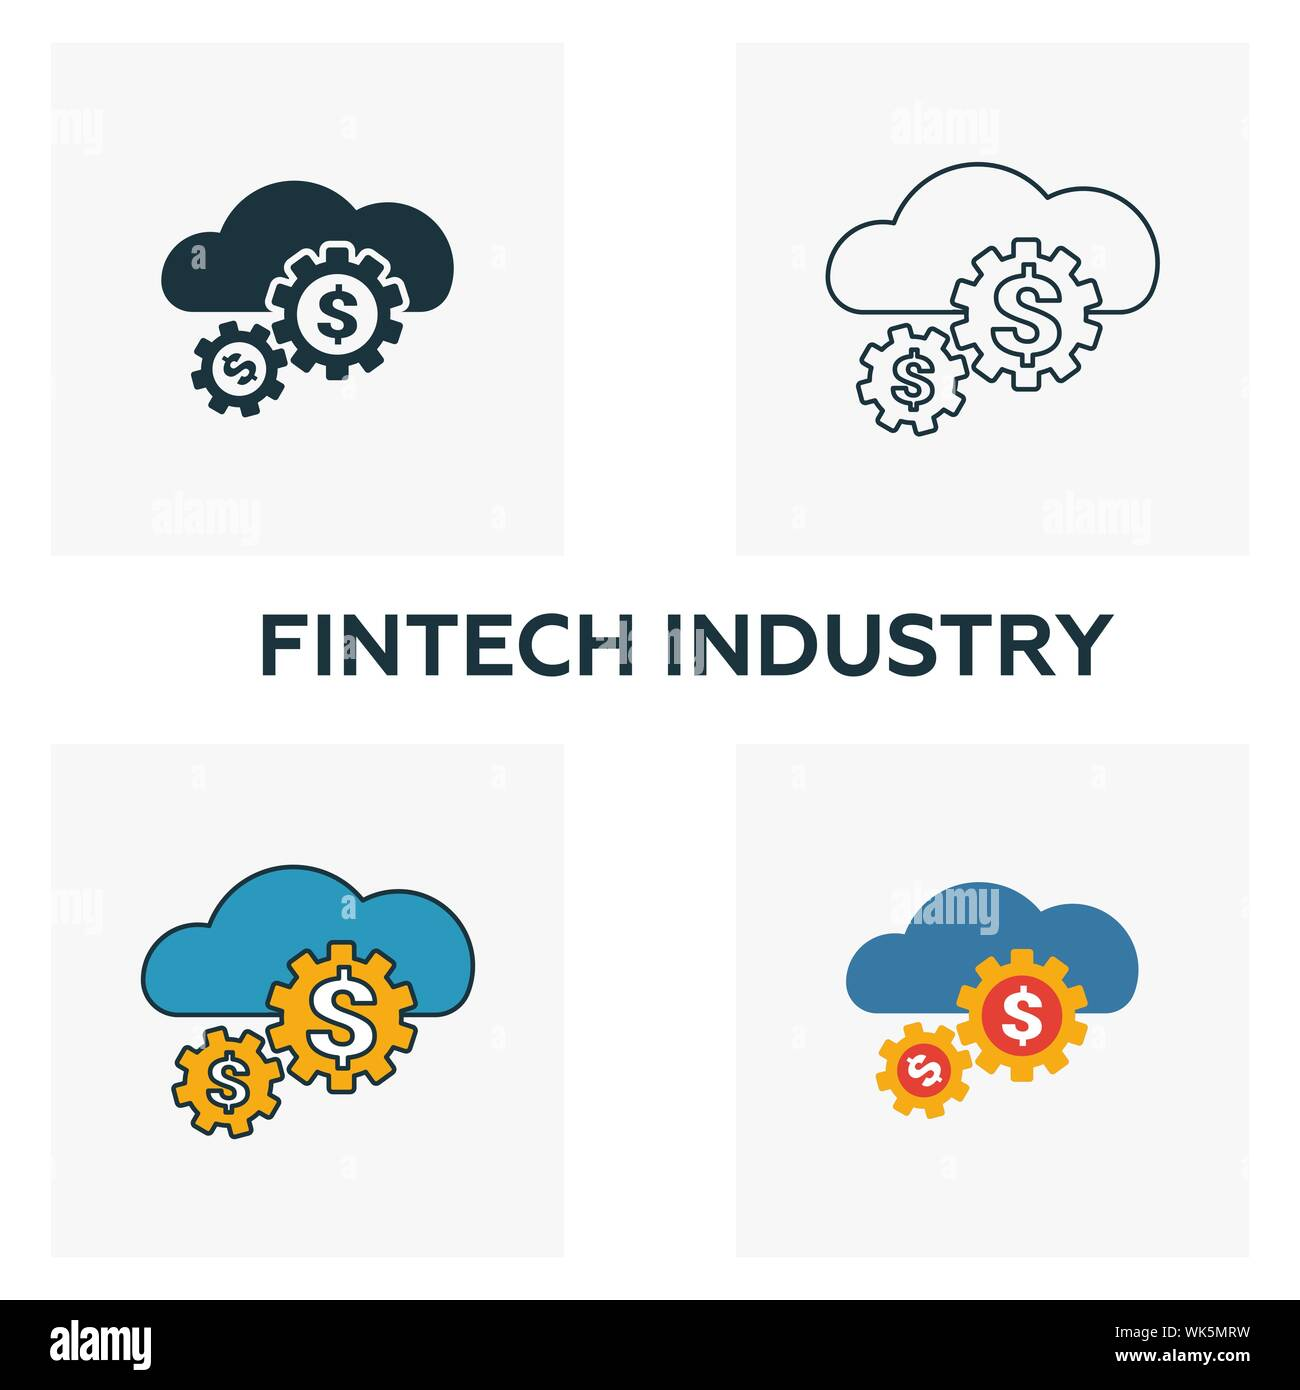 Fintech Industry icon set. Four elements in diferent styles from fintech icons collection. Creative fintech industry icons filled, outline, colored - Stock Photo